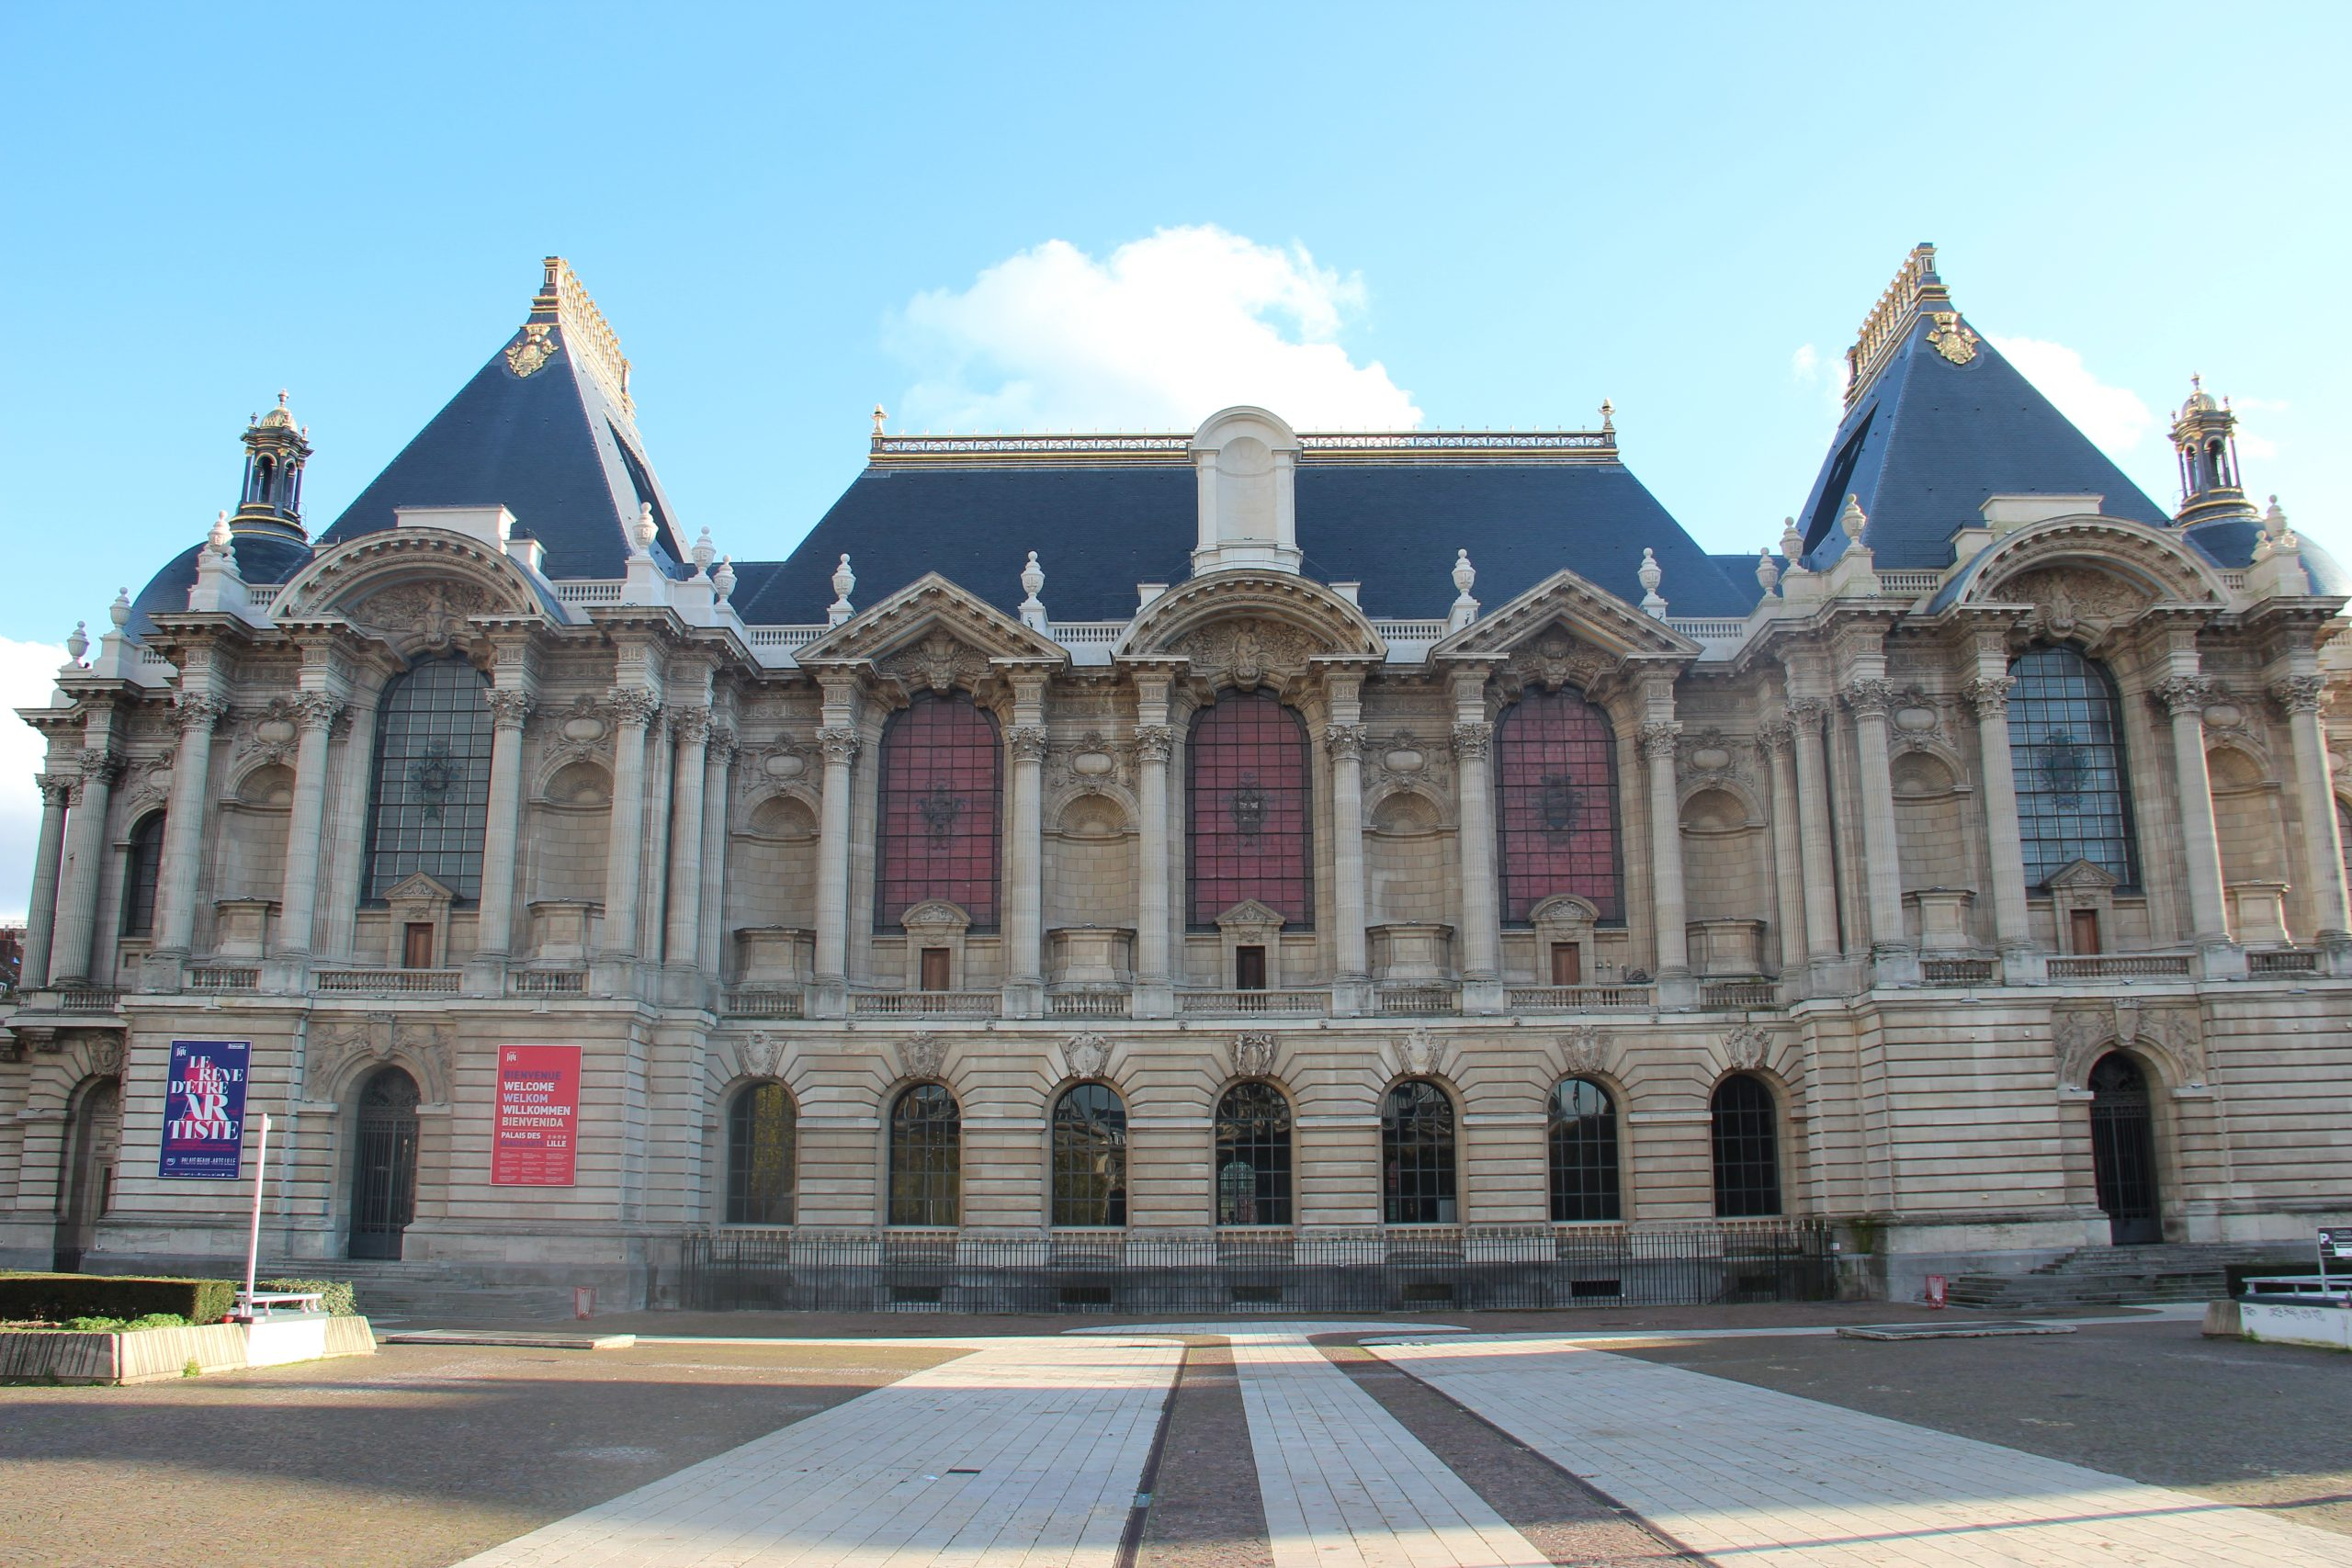 Tour the Art Museum of Lille